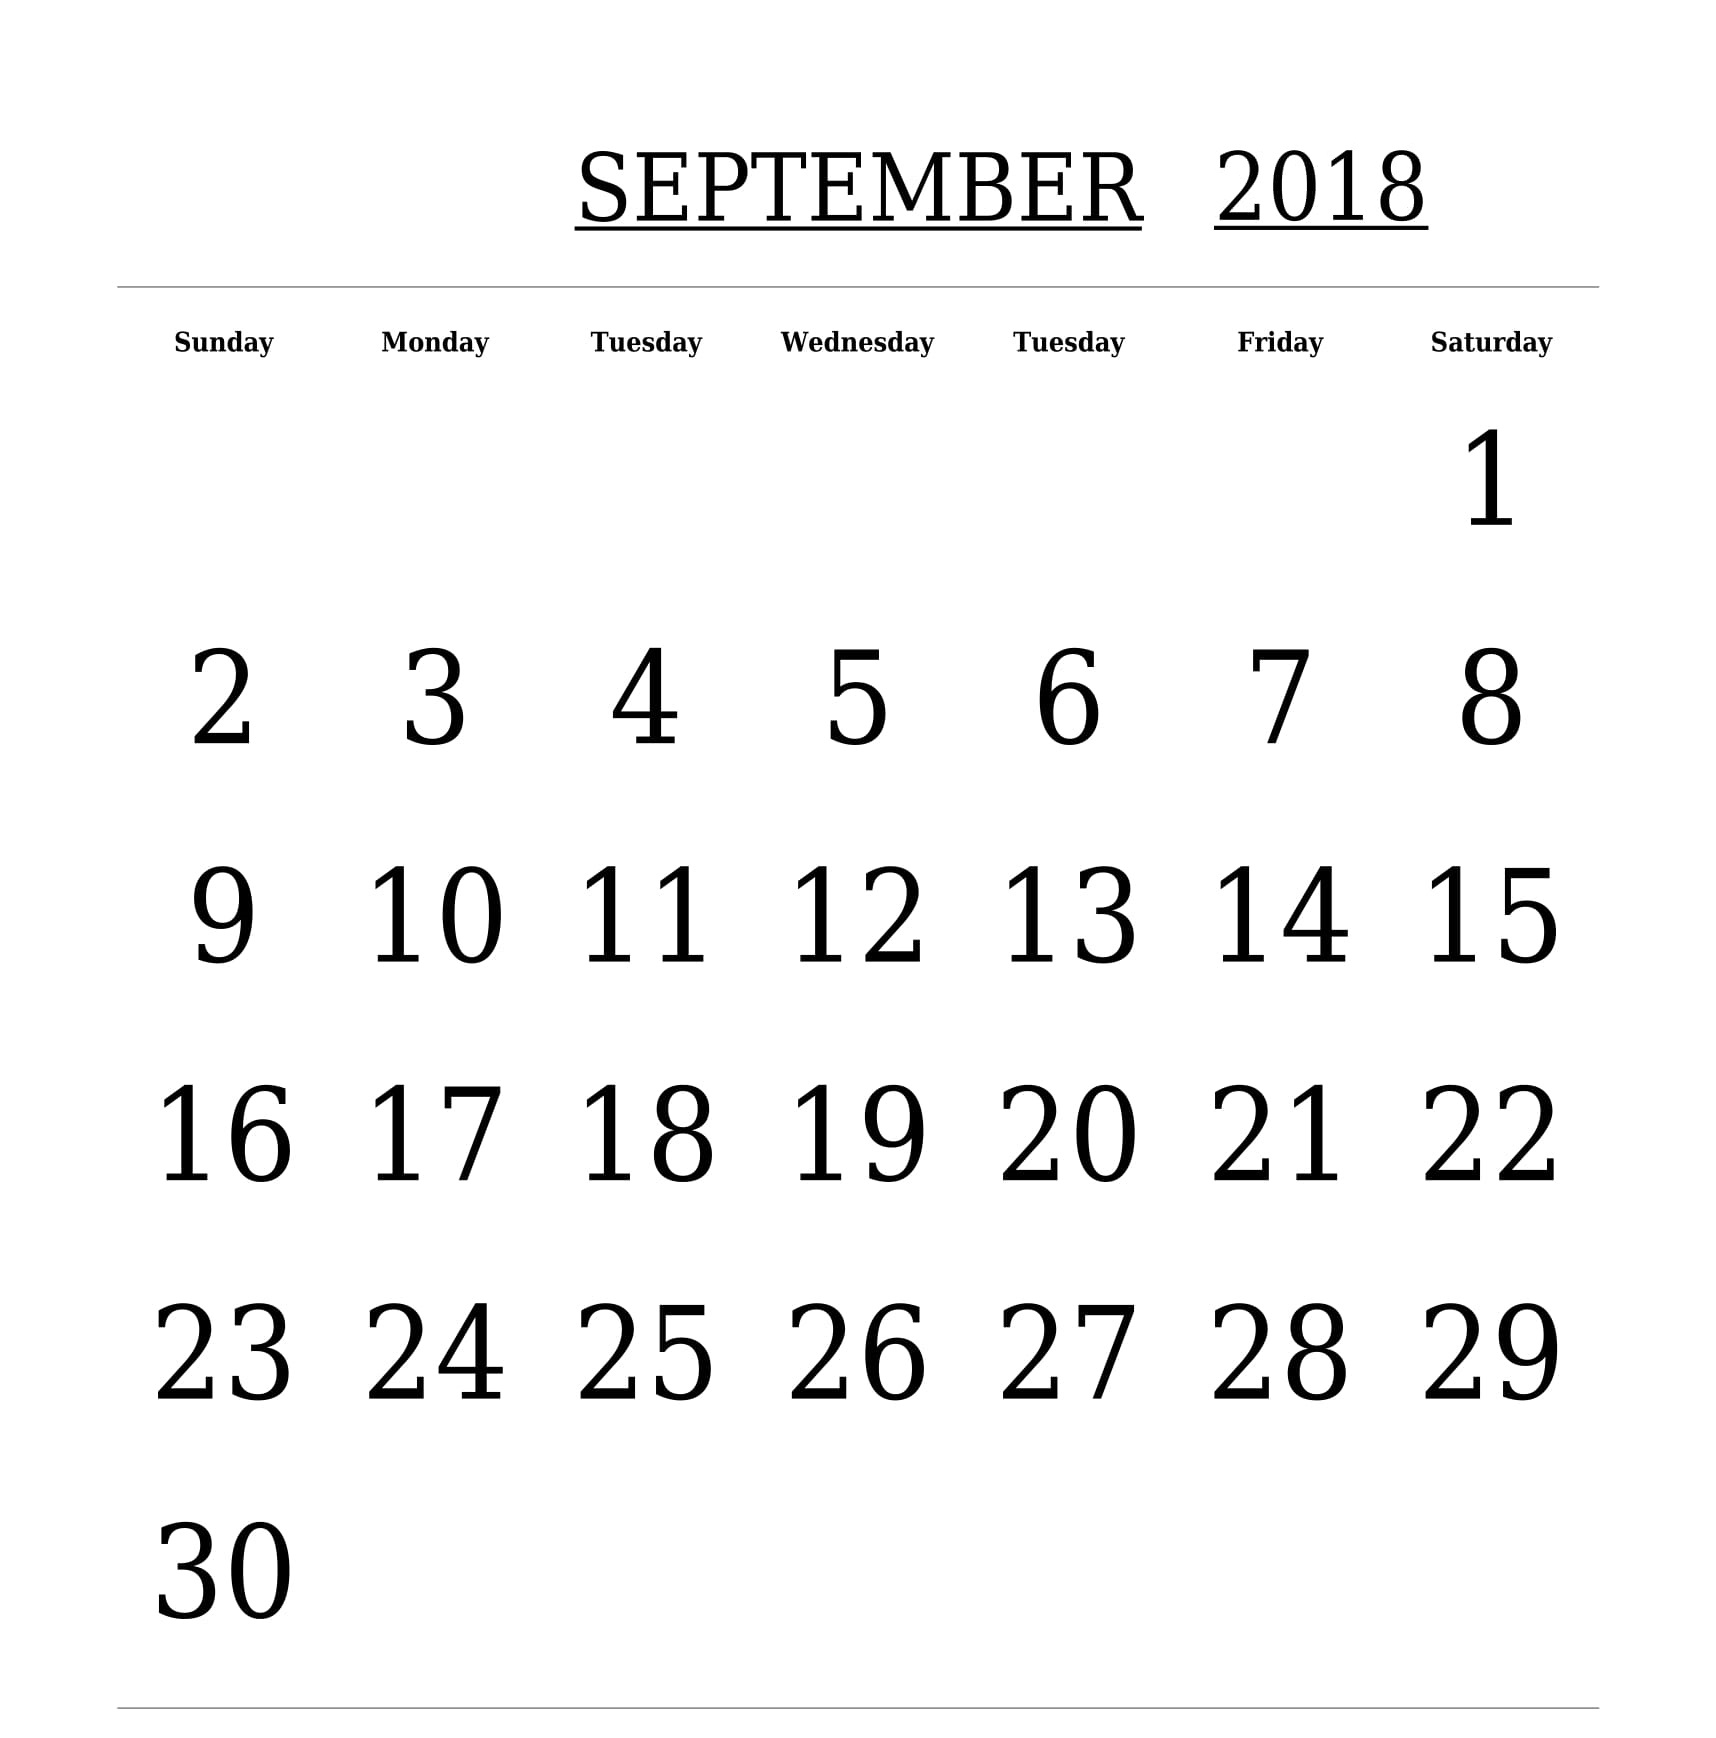 September Calendar 2018 Template In Excel Format